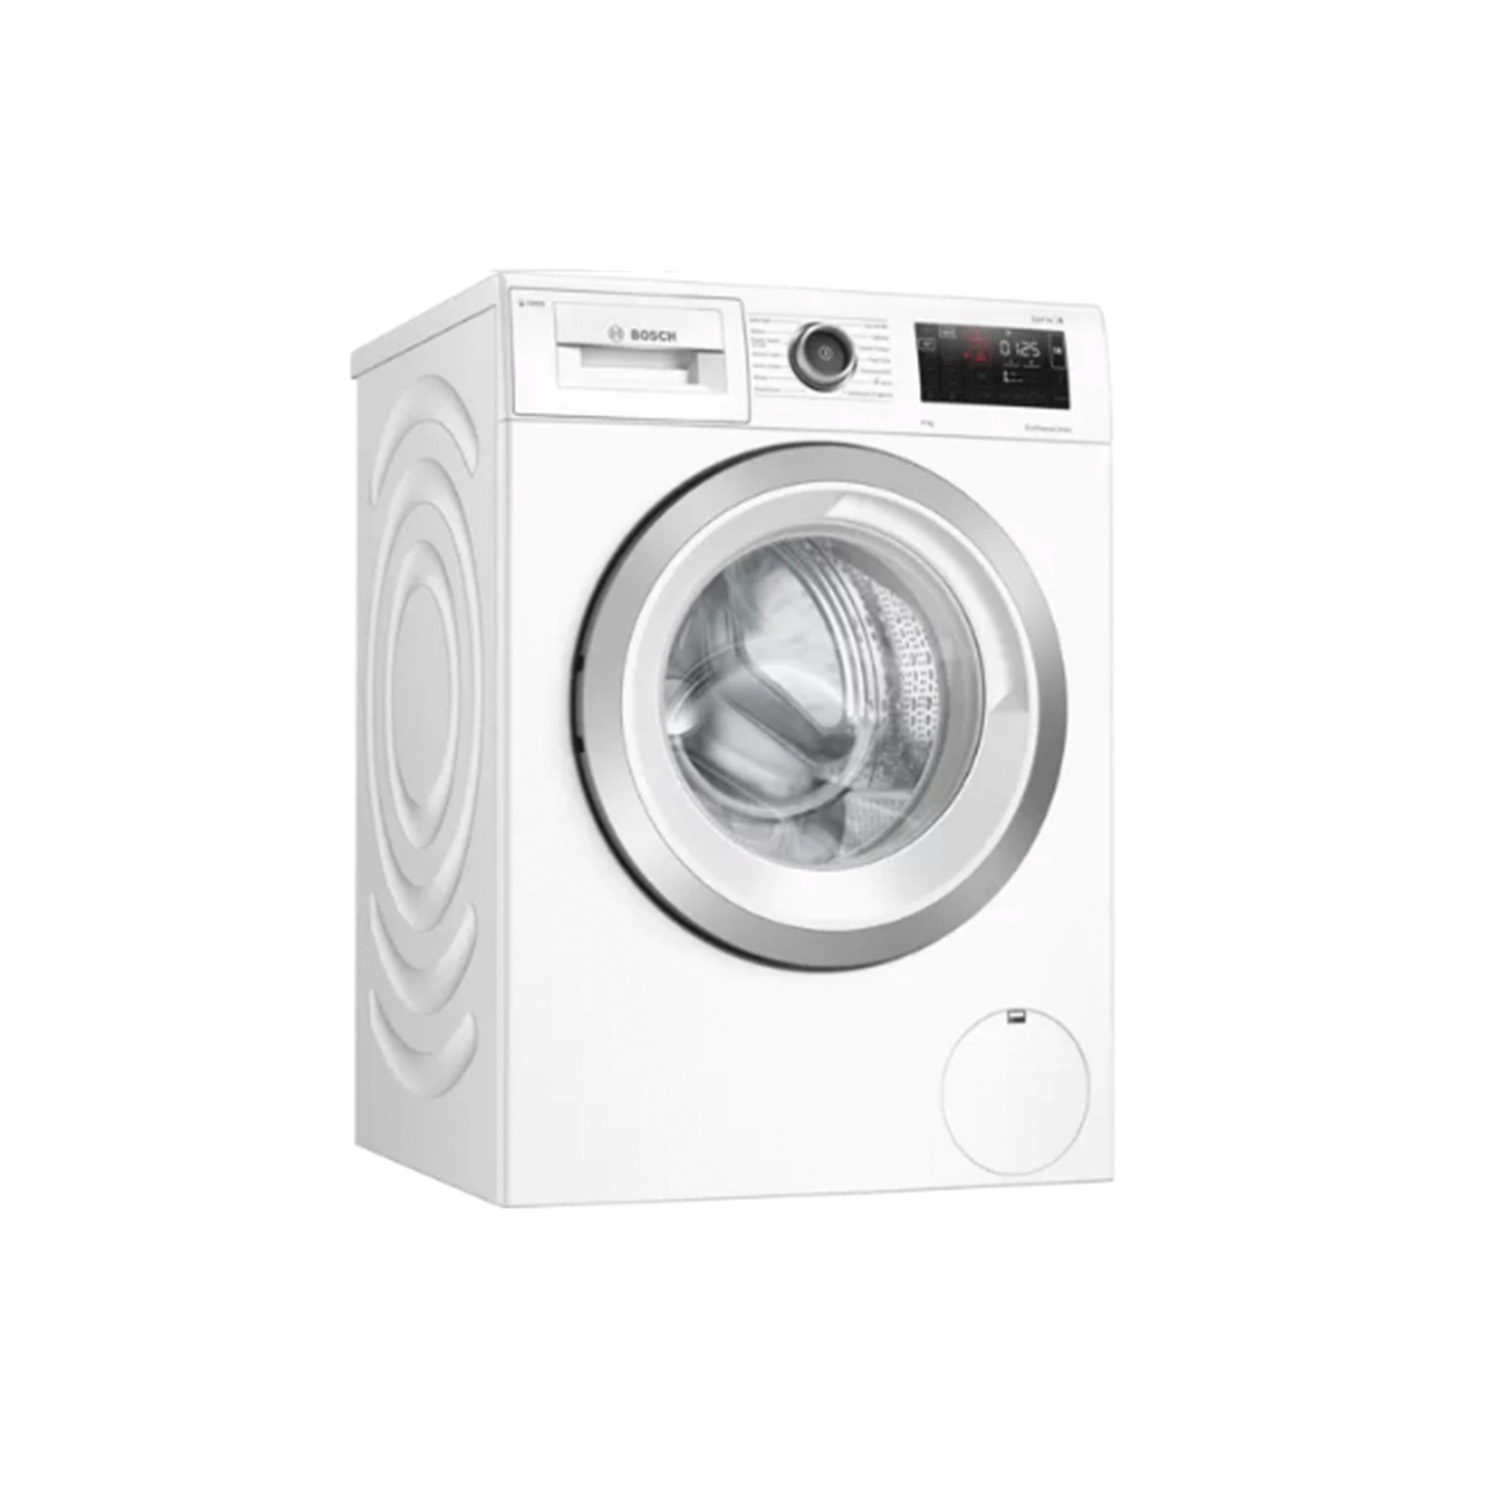 Bosch WAU28PH9GB 9kg 1400 Spin Washing Machine with EcoSilence Drive - White - 5